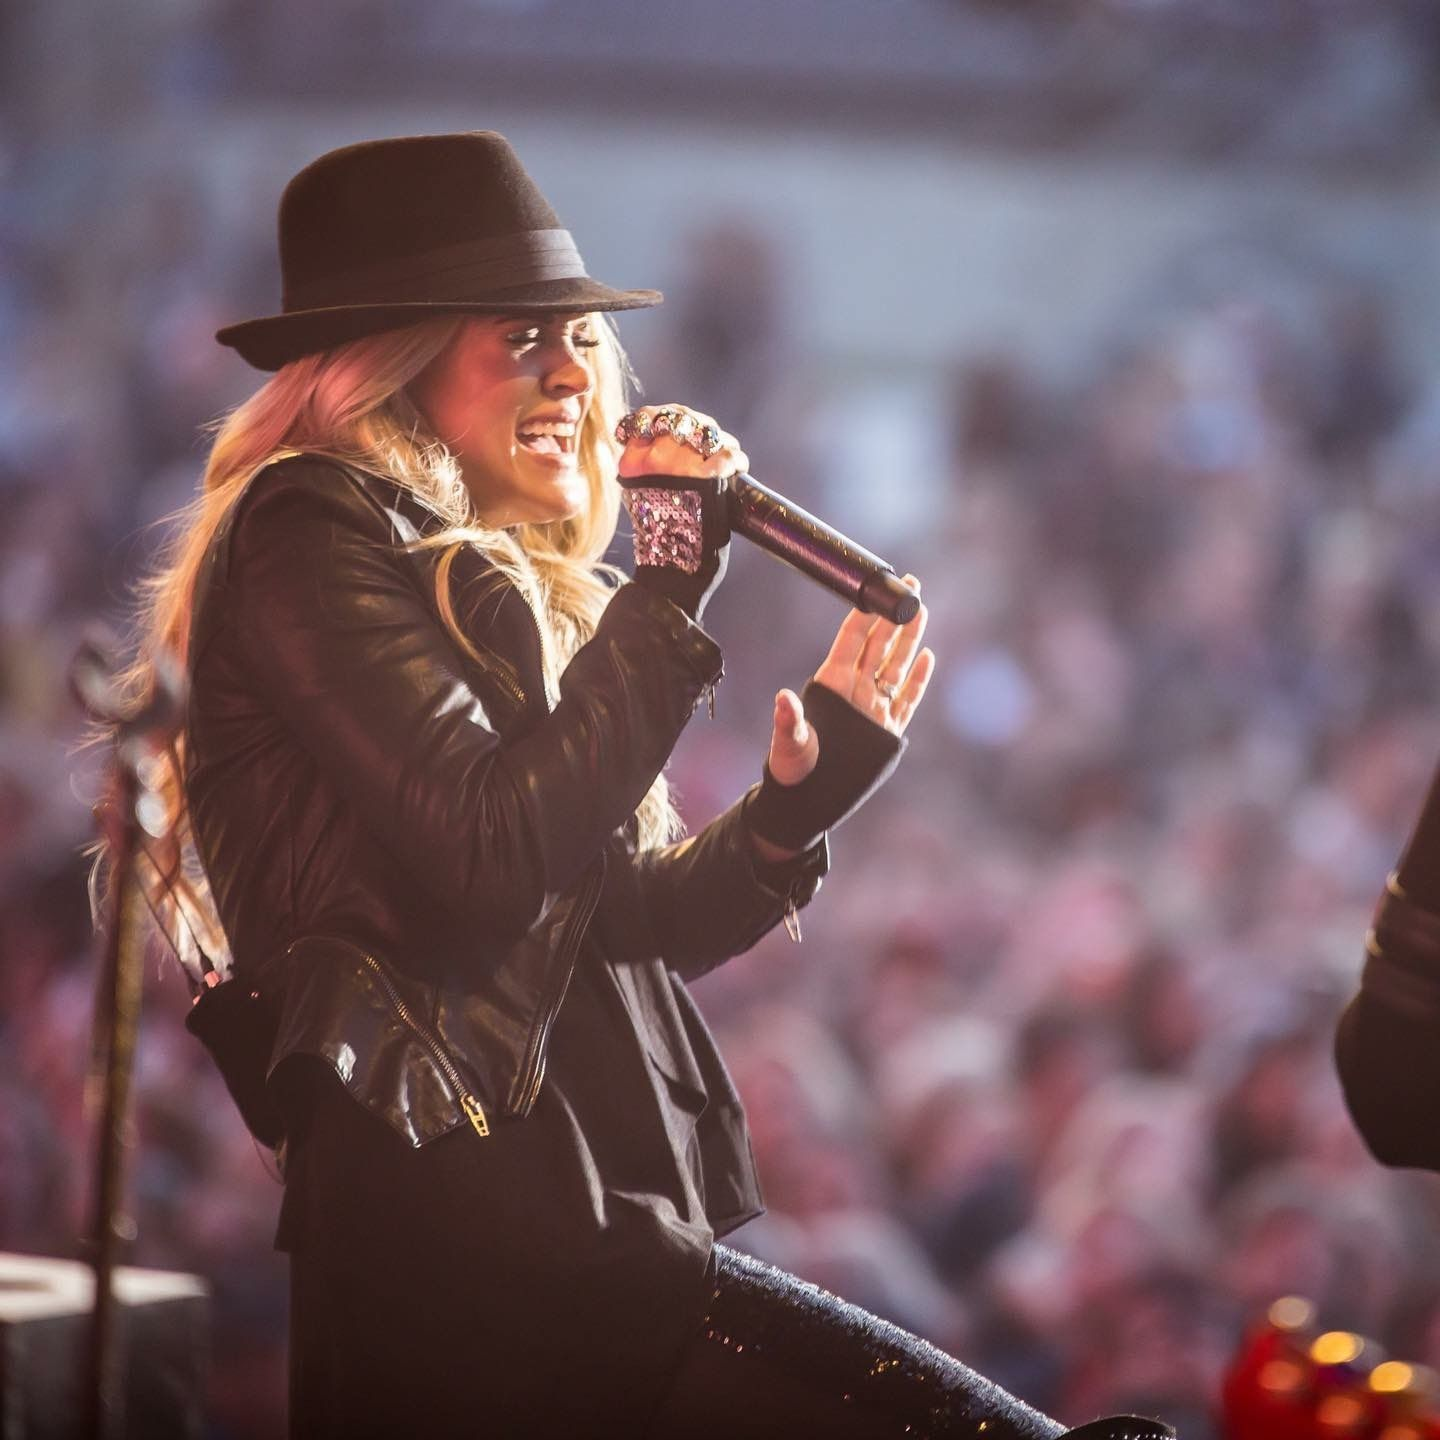 Pin by QUEEN CARRIE UNDERWOOD on Carrie underwood Carrie